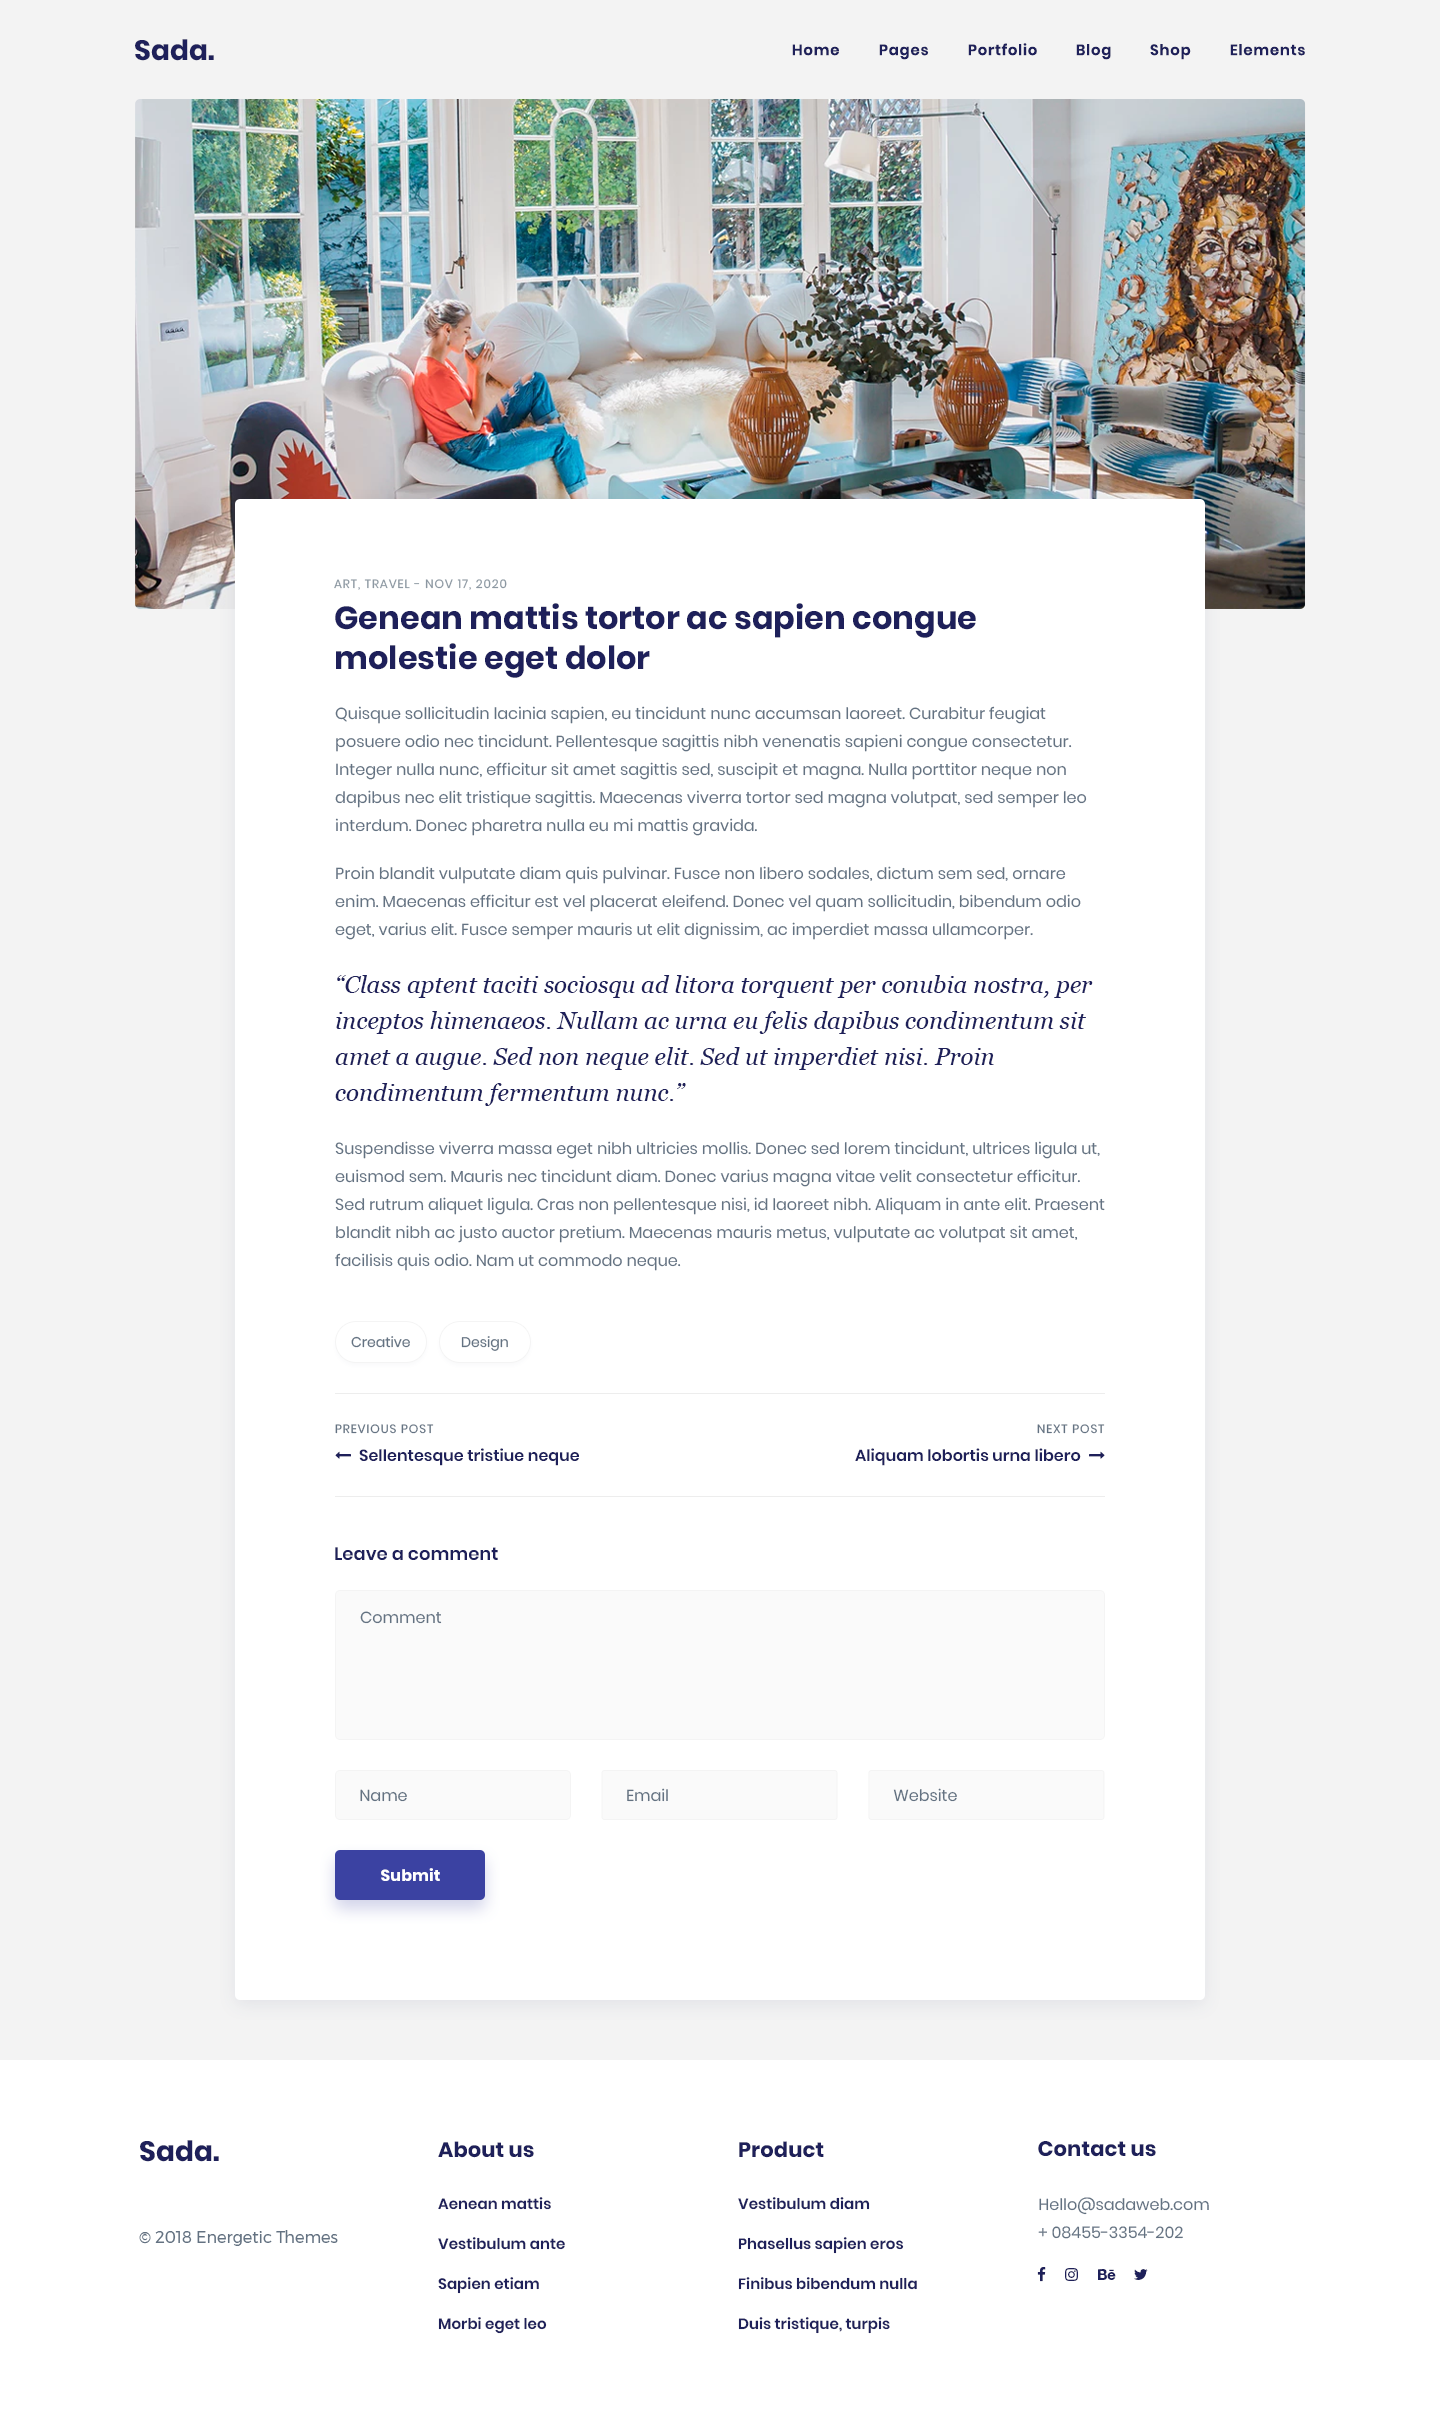 Sada Is Minimalist Trendy And Modern Wordpress Theme For Blog And Shop Contemporary Card Style Mater Modern Wordpress Themes Blog Layout Blog Themes Wordpress